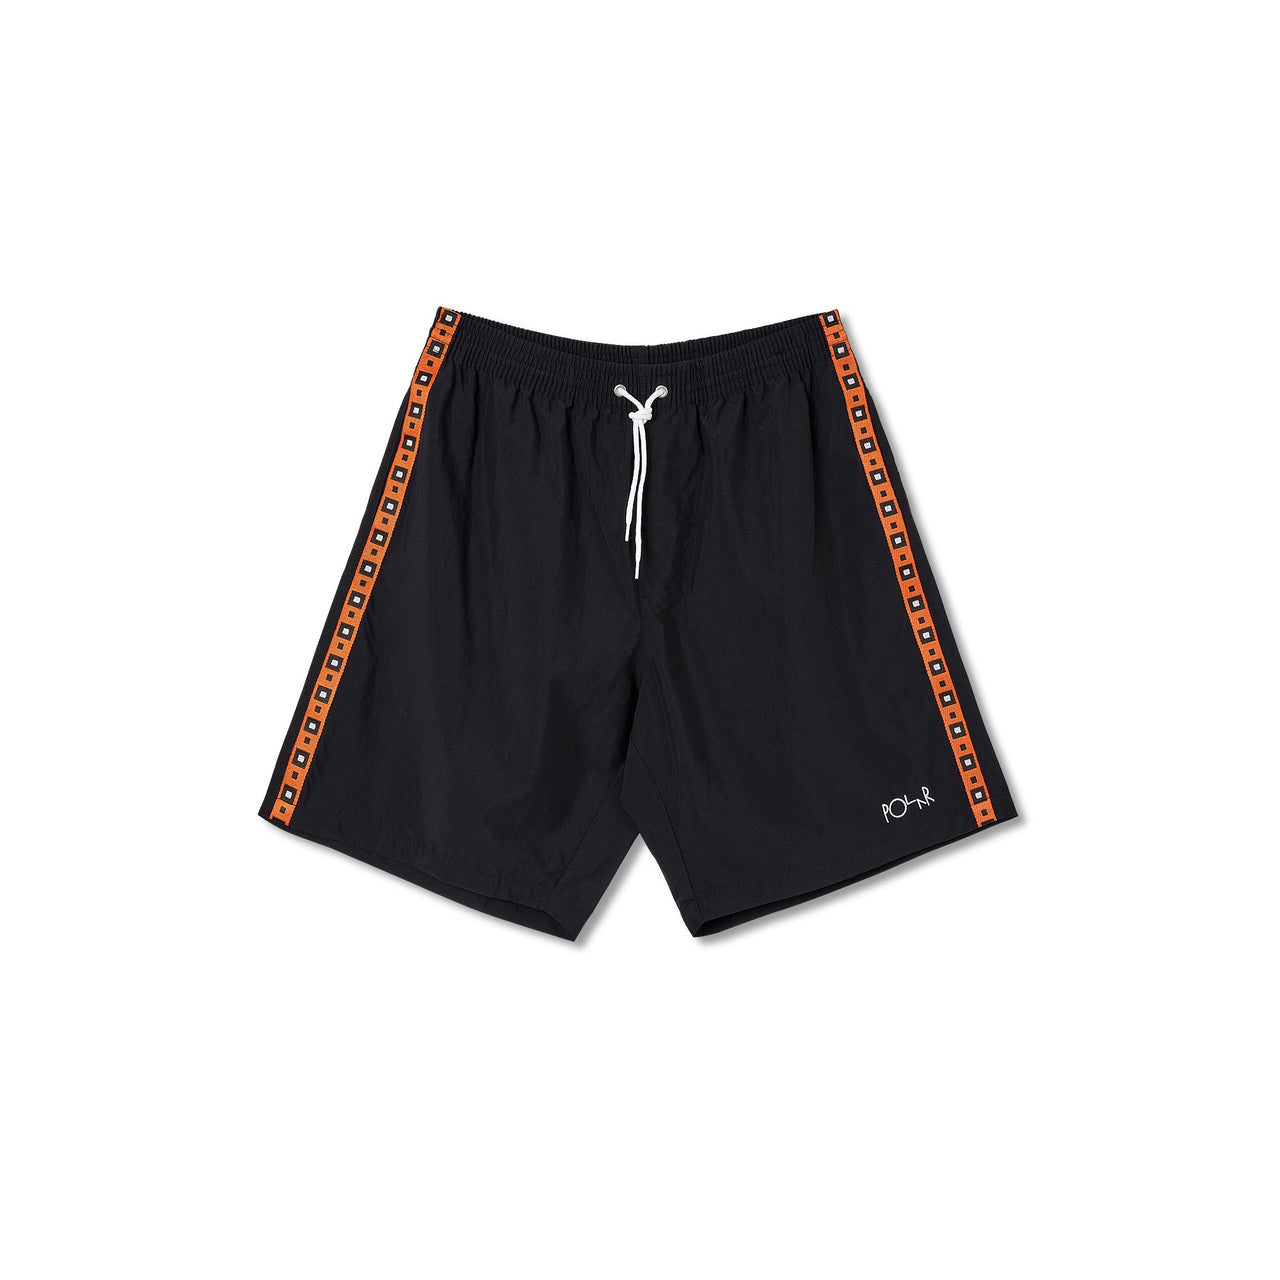 Square Stripe City/Swim Shorts - Black